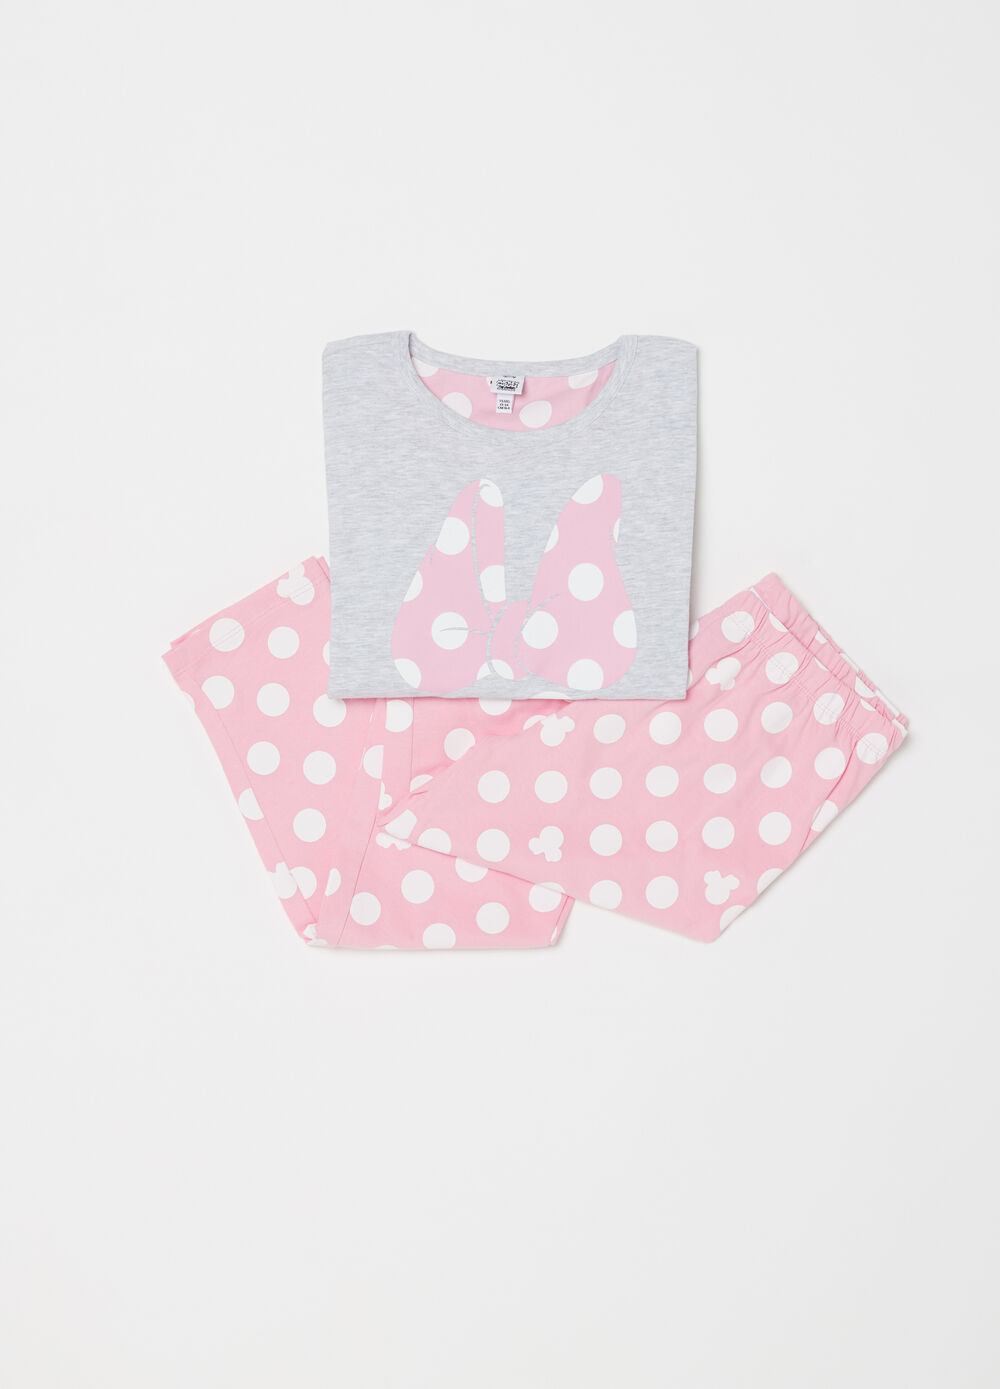 Full-length Disney Minnie Mouse pyjamas with polka dots